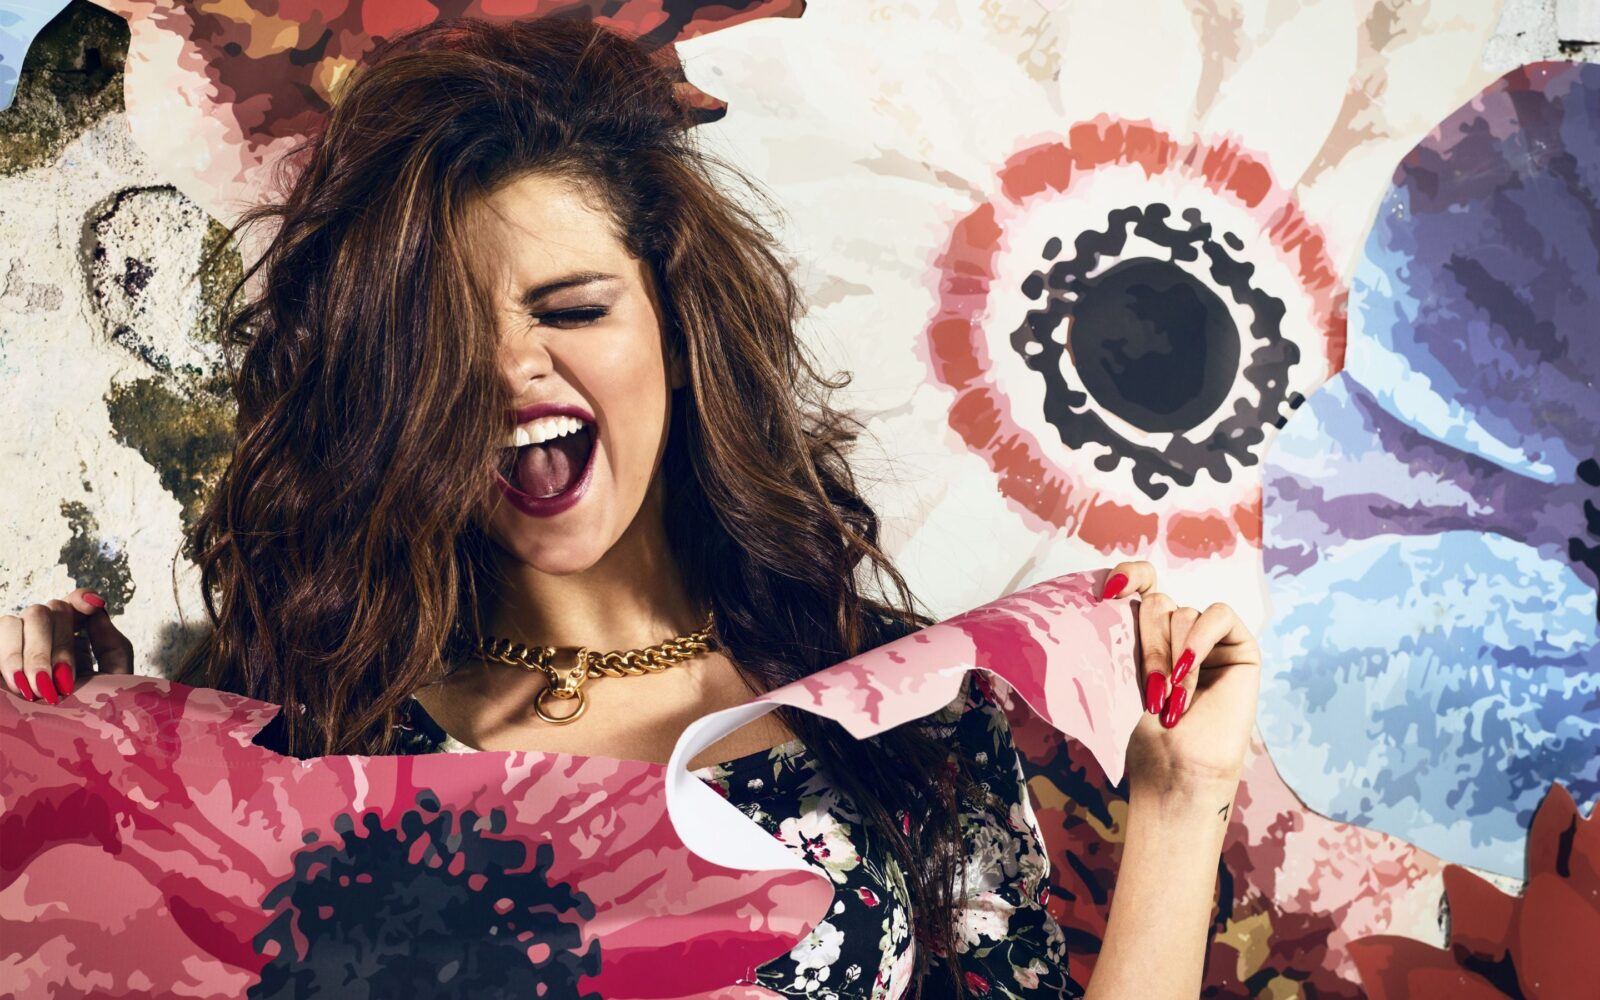 Crazy Selena Gomez High Resolution wallpaper